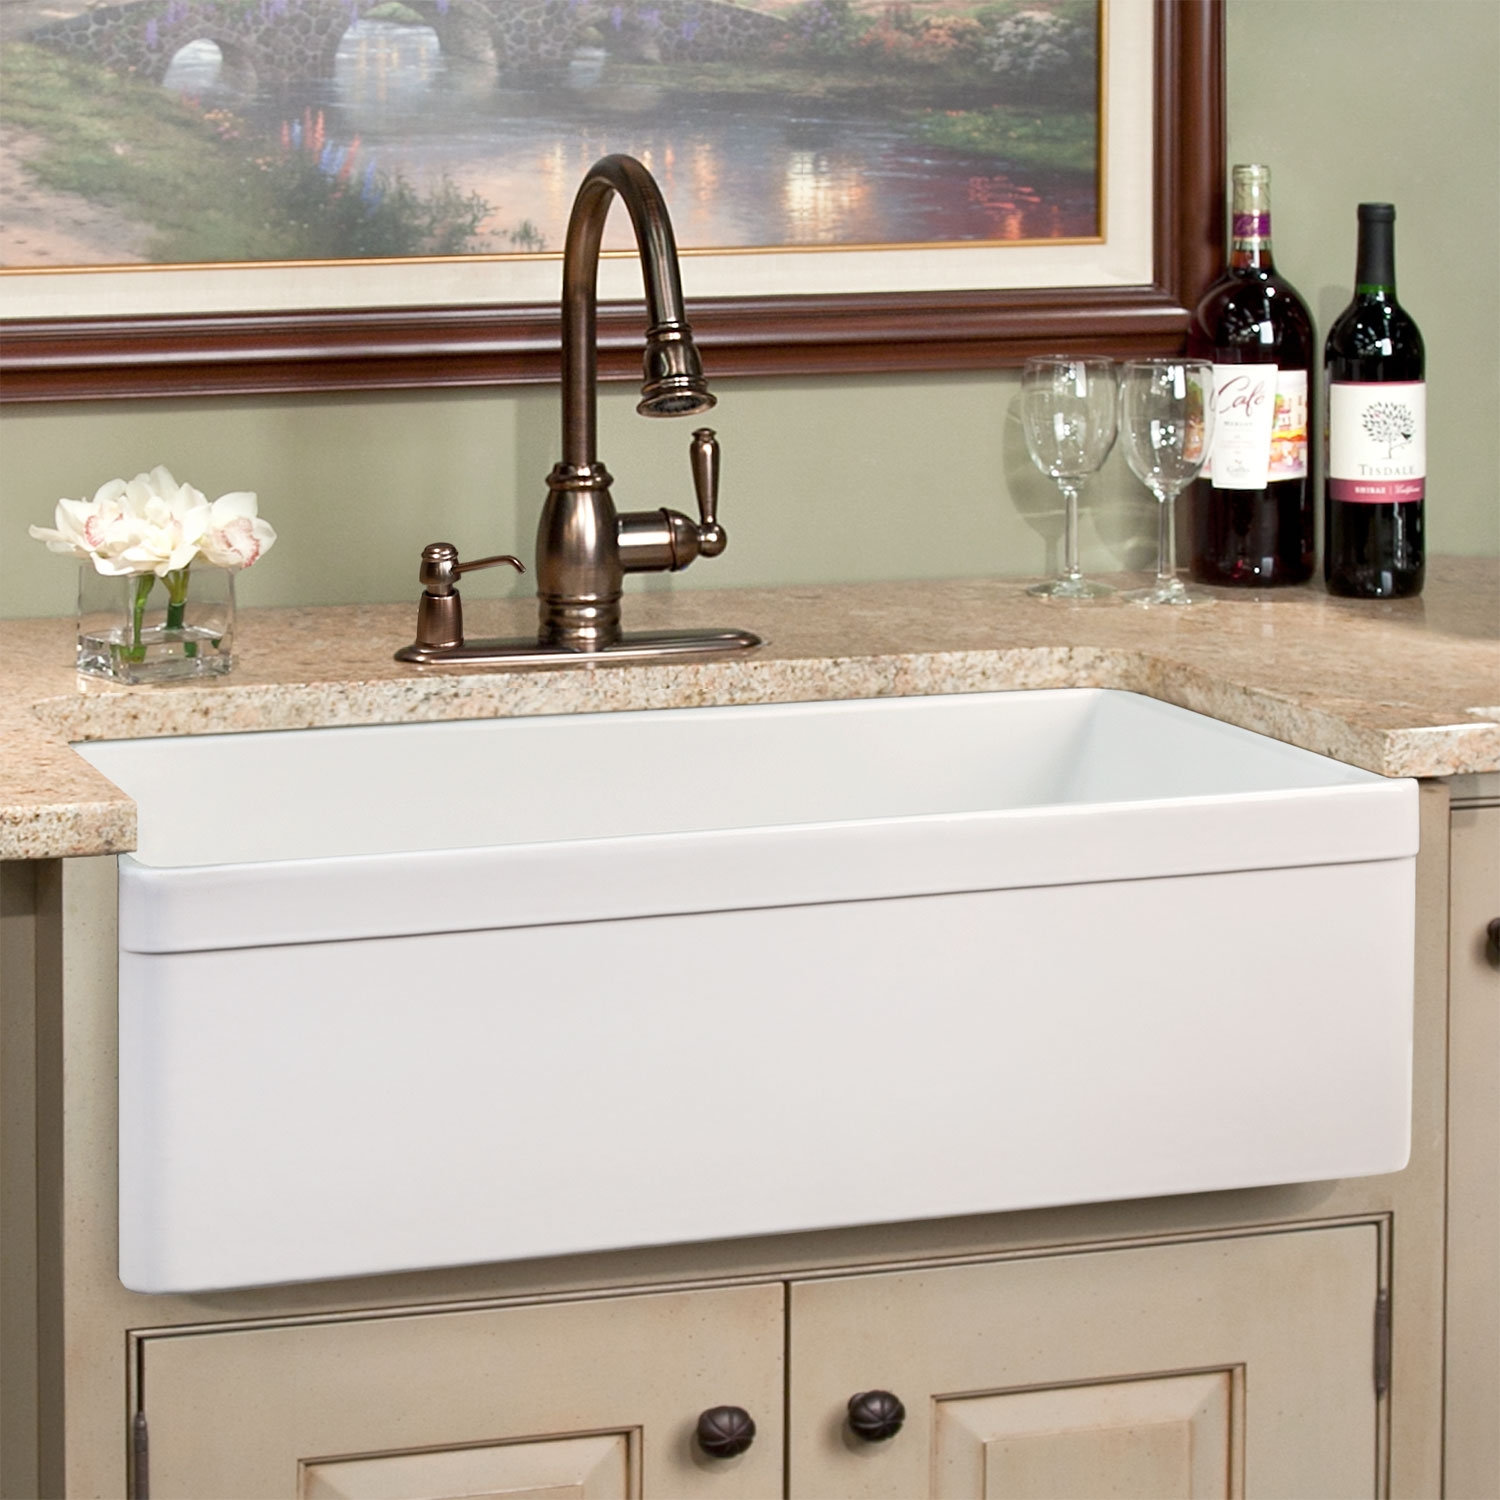 Ideas, kitchen exciting kitchen sinks and faucets for your home decor throughout dimensions 1500 x 1500  .